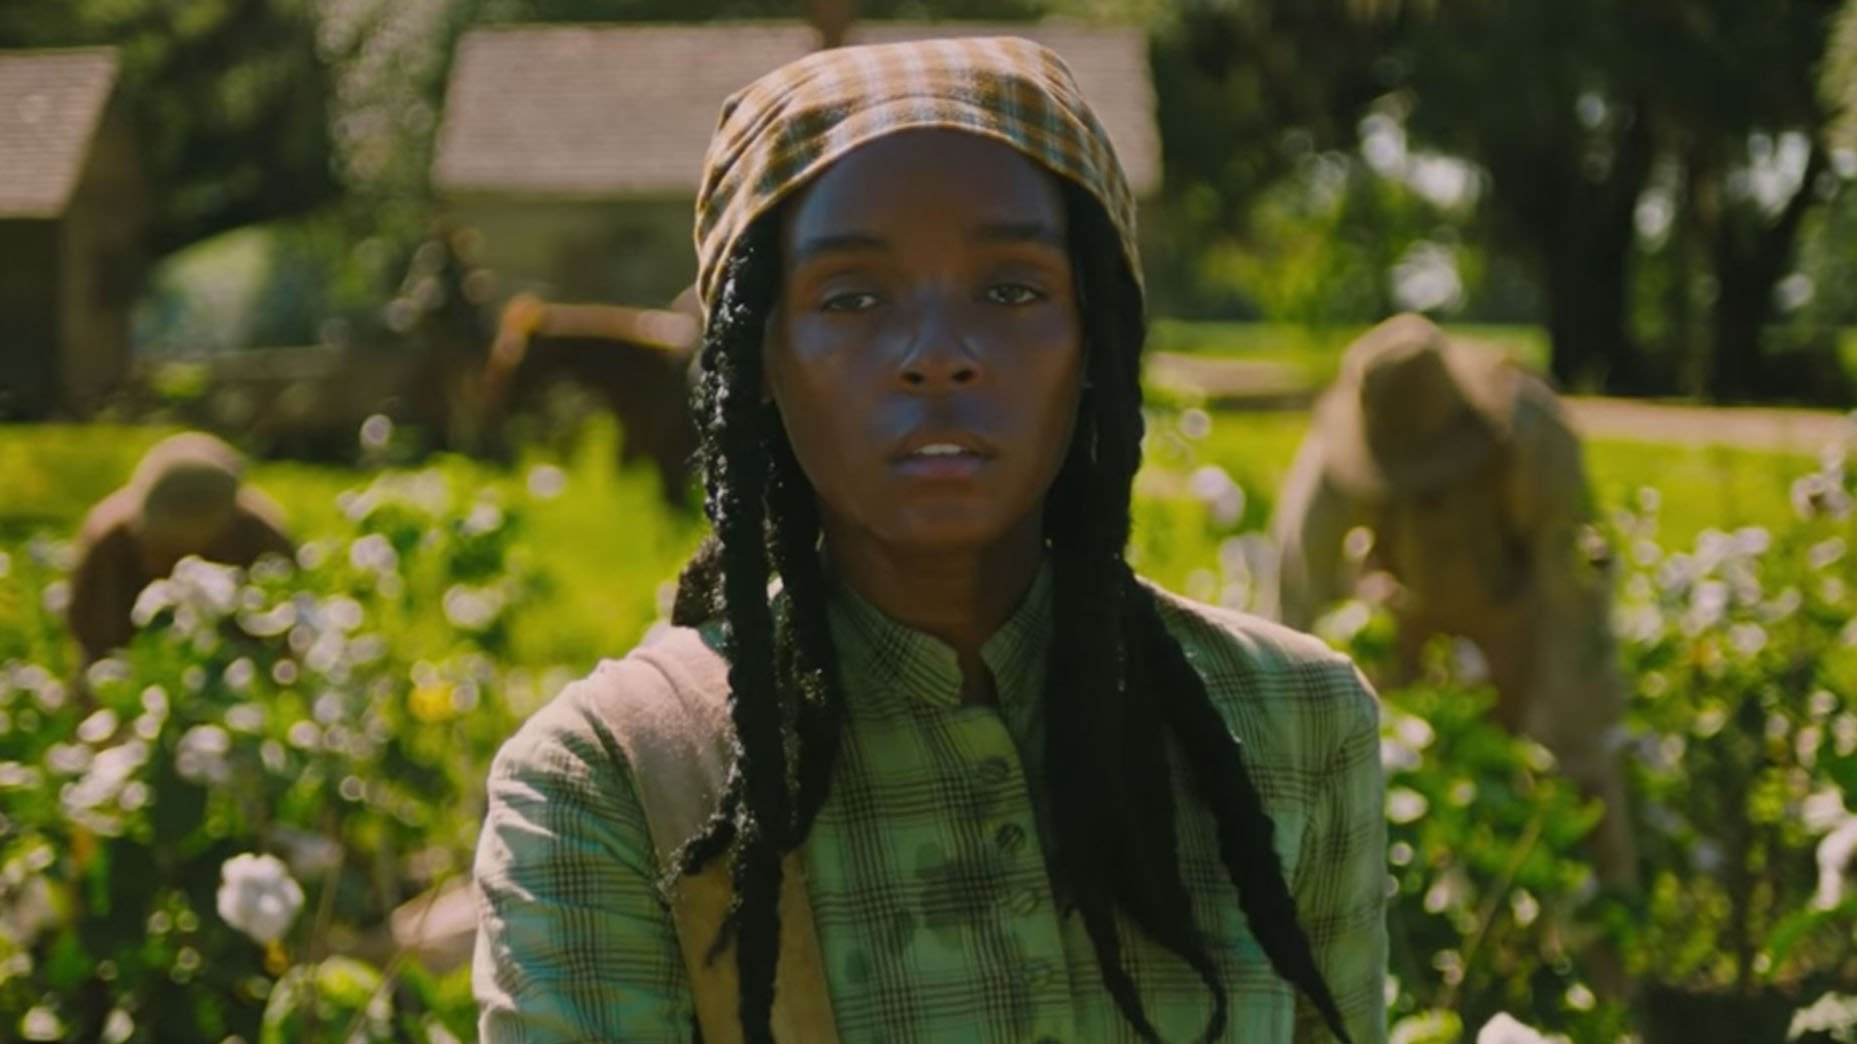 'Us' and 'Get Out' producers just dropped a teaser for a new thriller starring Janelle Monáe